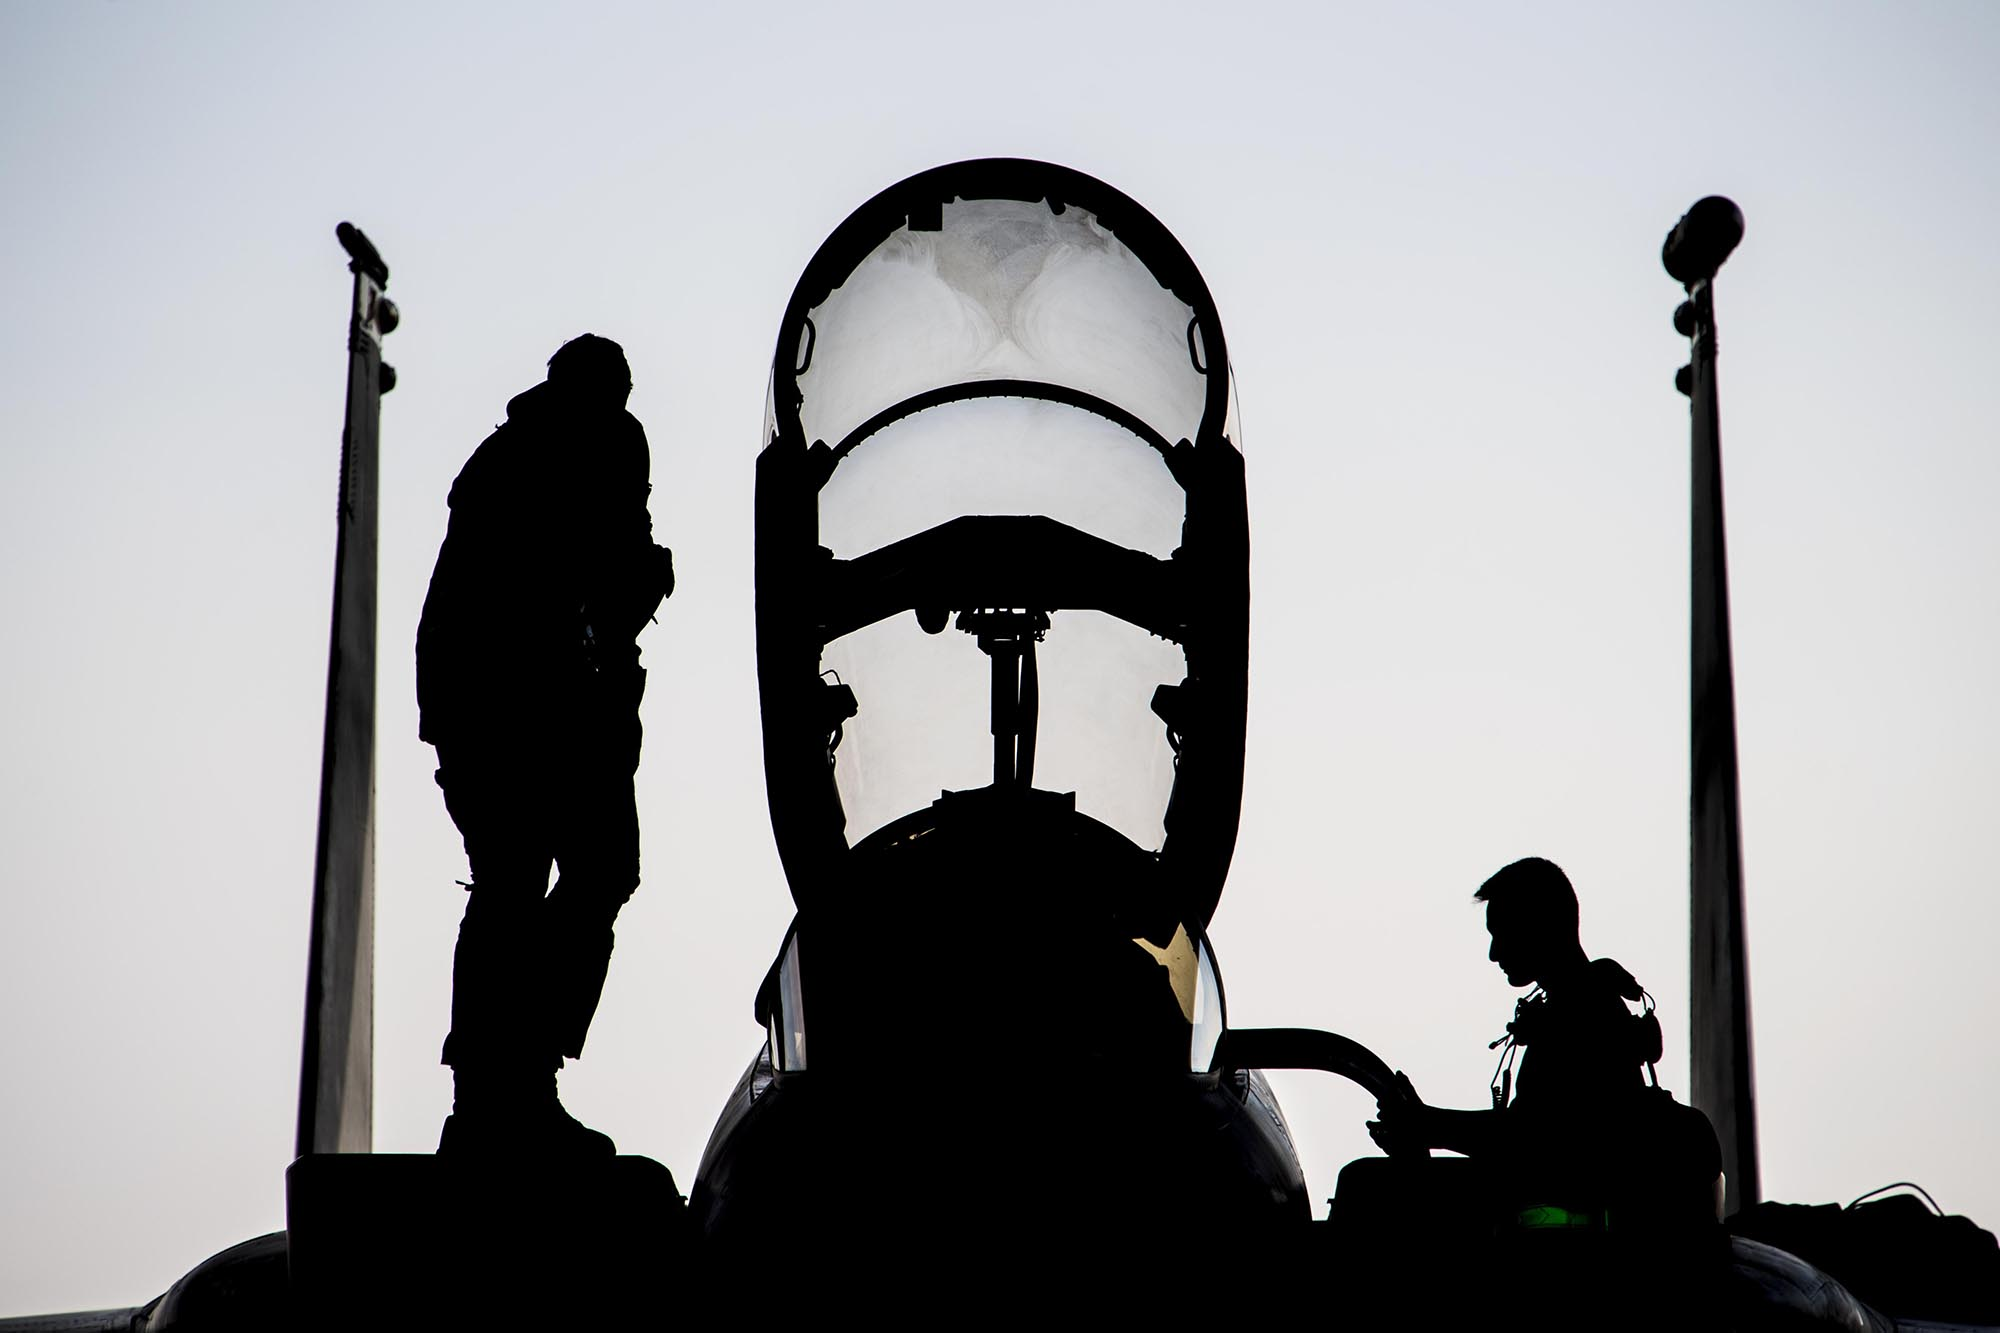 Air Force Capt. Ryan Heil and a maintainer assigned stand on an F-15E Strike Eagle shortly after landing at Al Dhafra Air Base, United Arab Emirates, Feb 13, 2021. (Senior Airman Aaron Larue Guerrisky/Air Force)